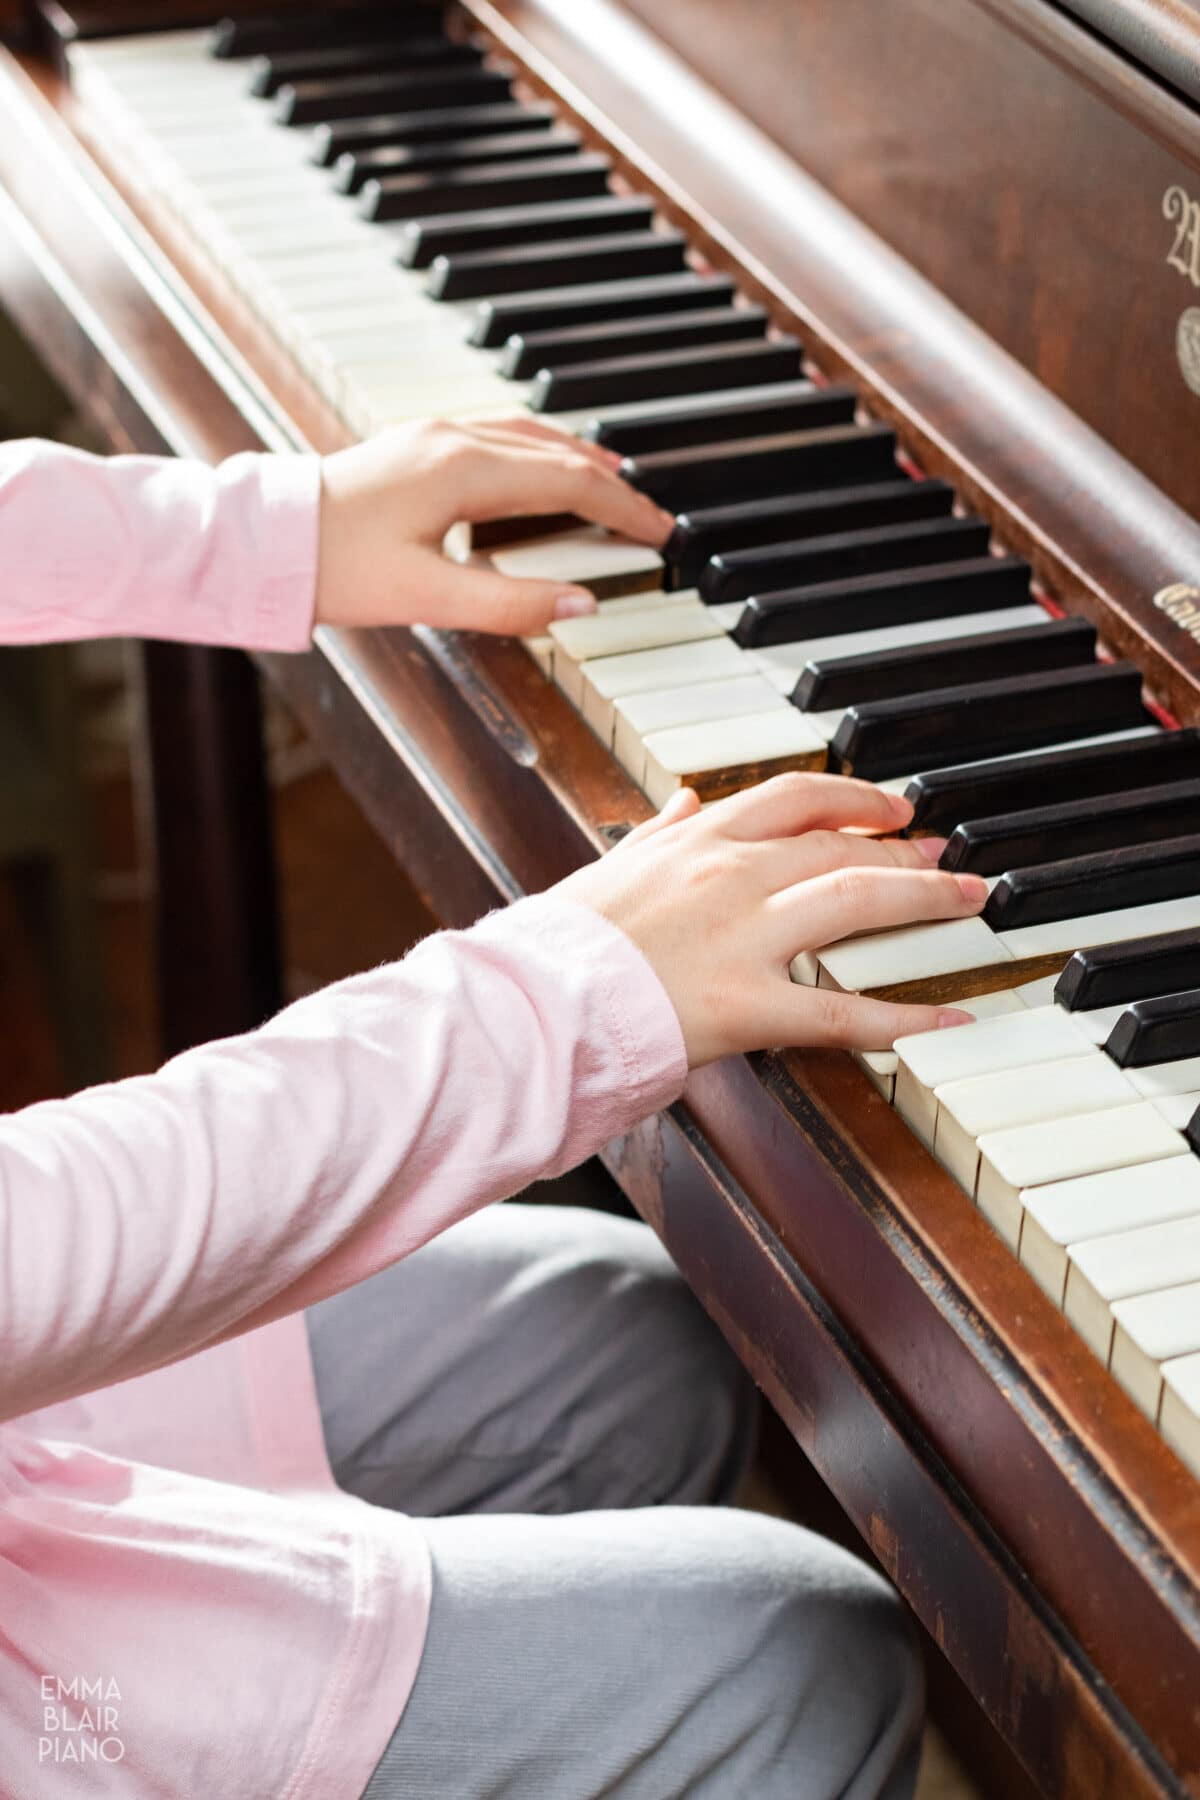 young girl's hands playing an upright piano